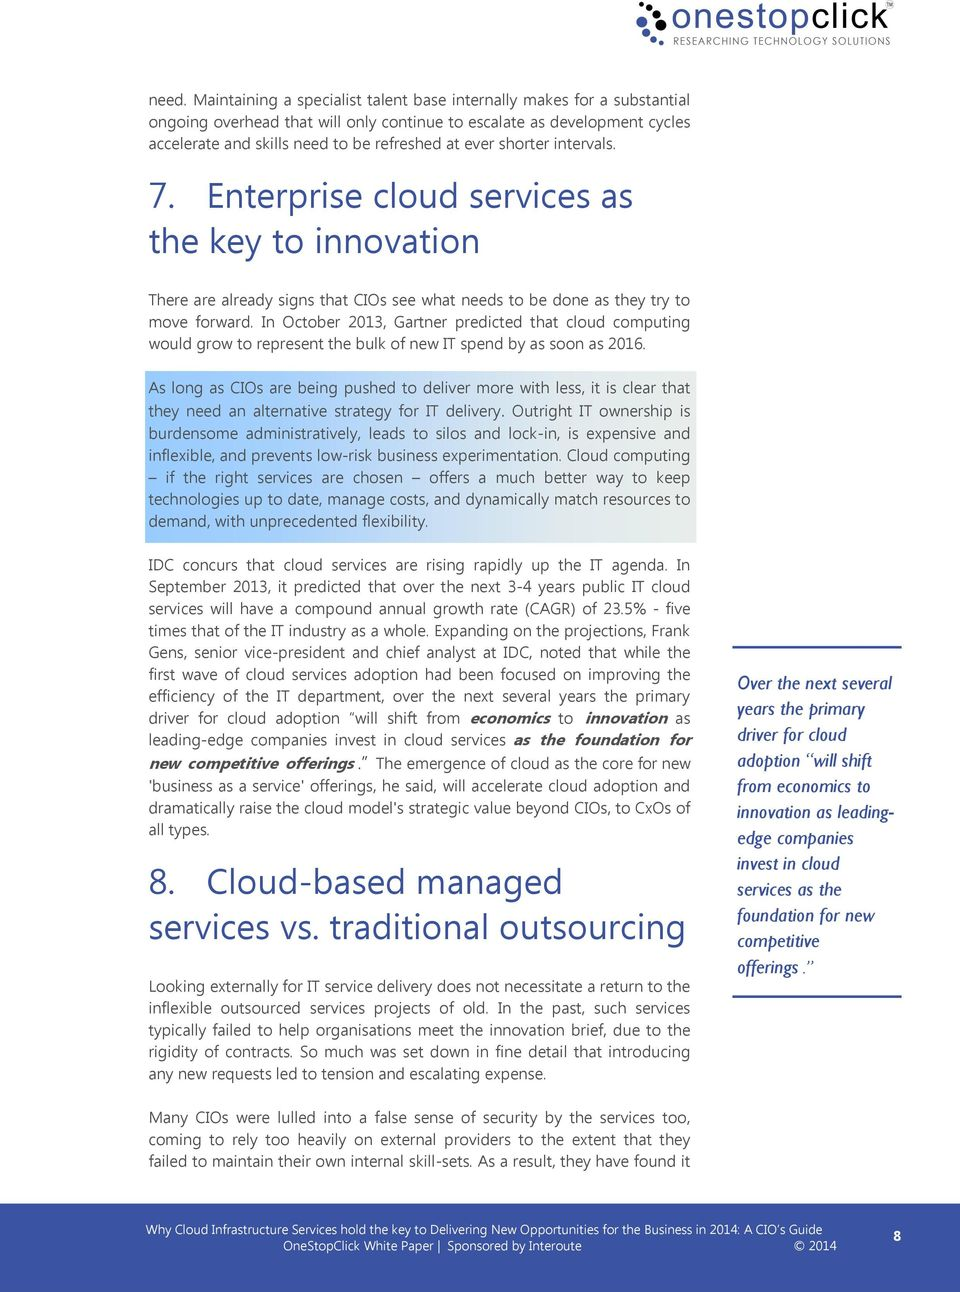 In October 2013, Gartner predicted that cloud computing would grow to represent the bulk of new IT spend by as soon as 2016.